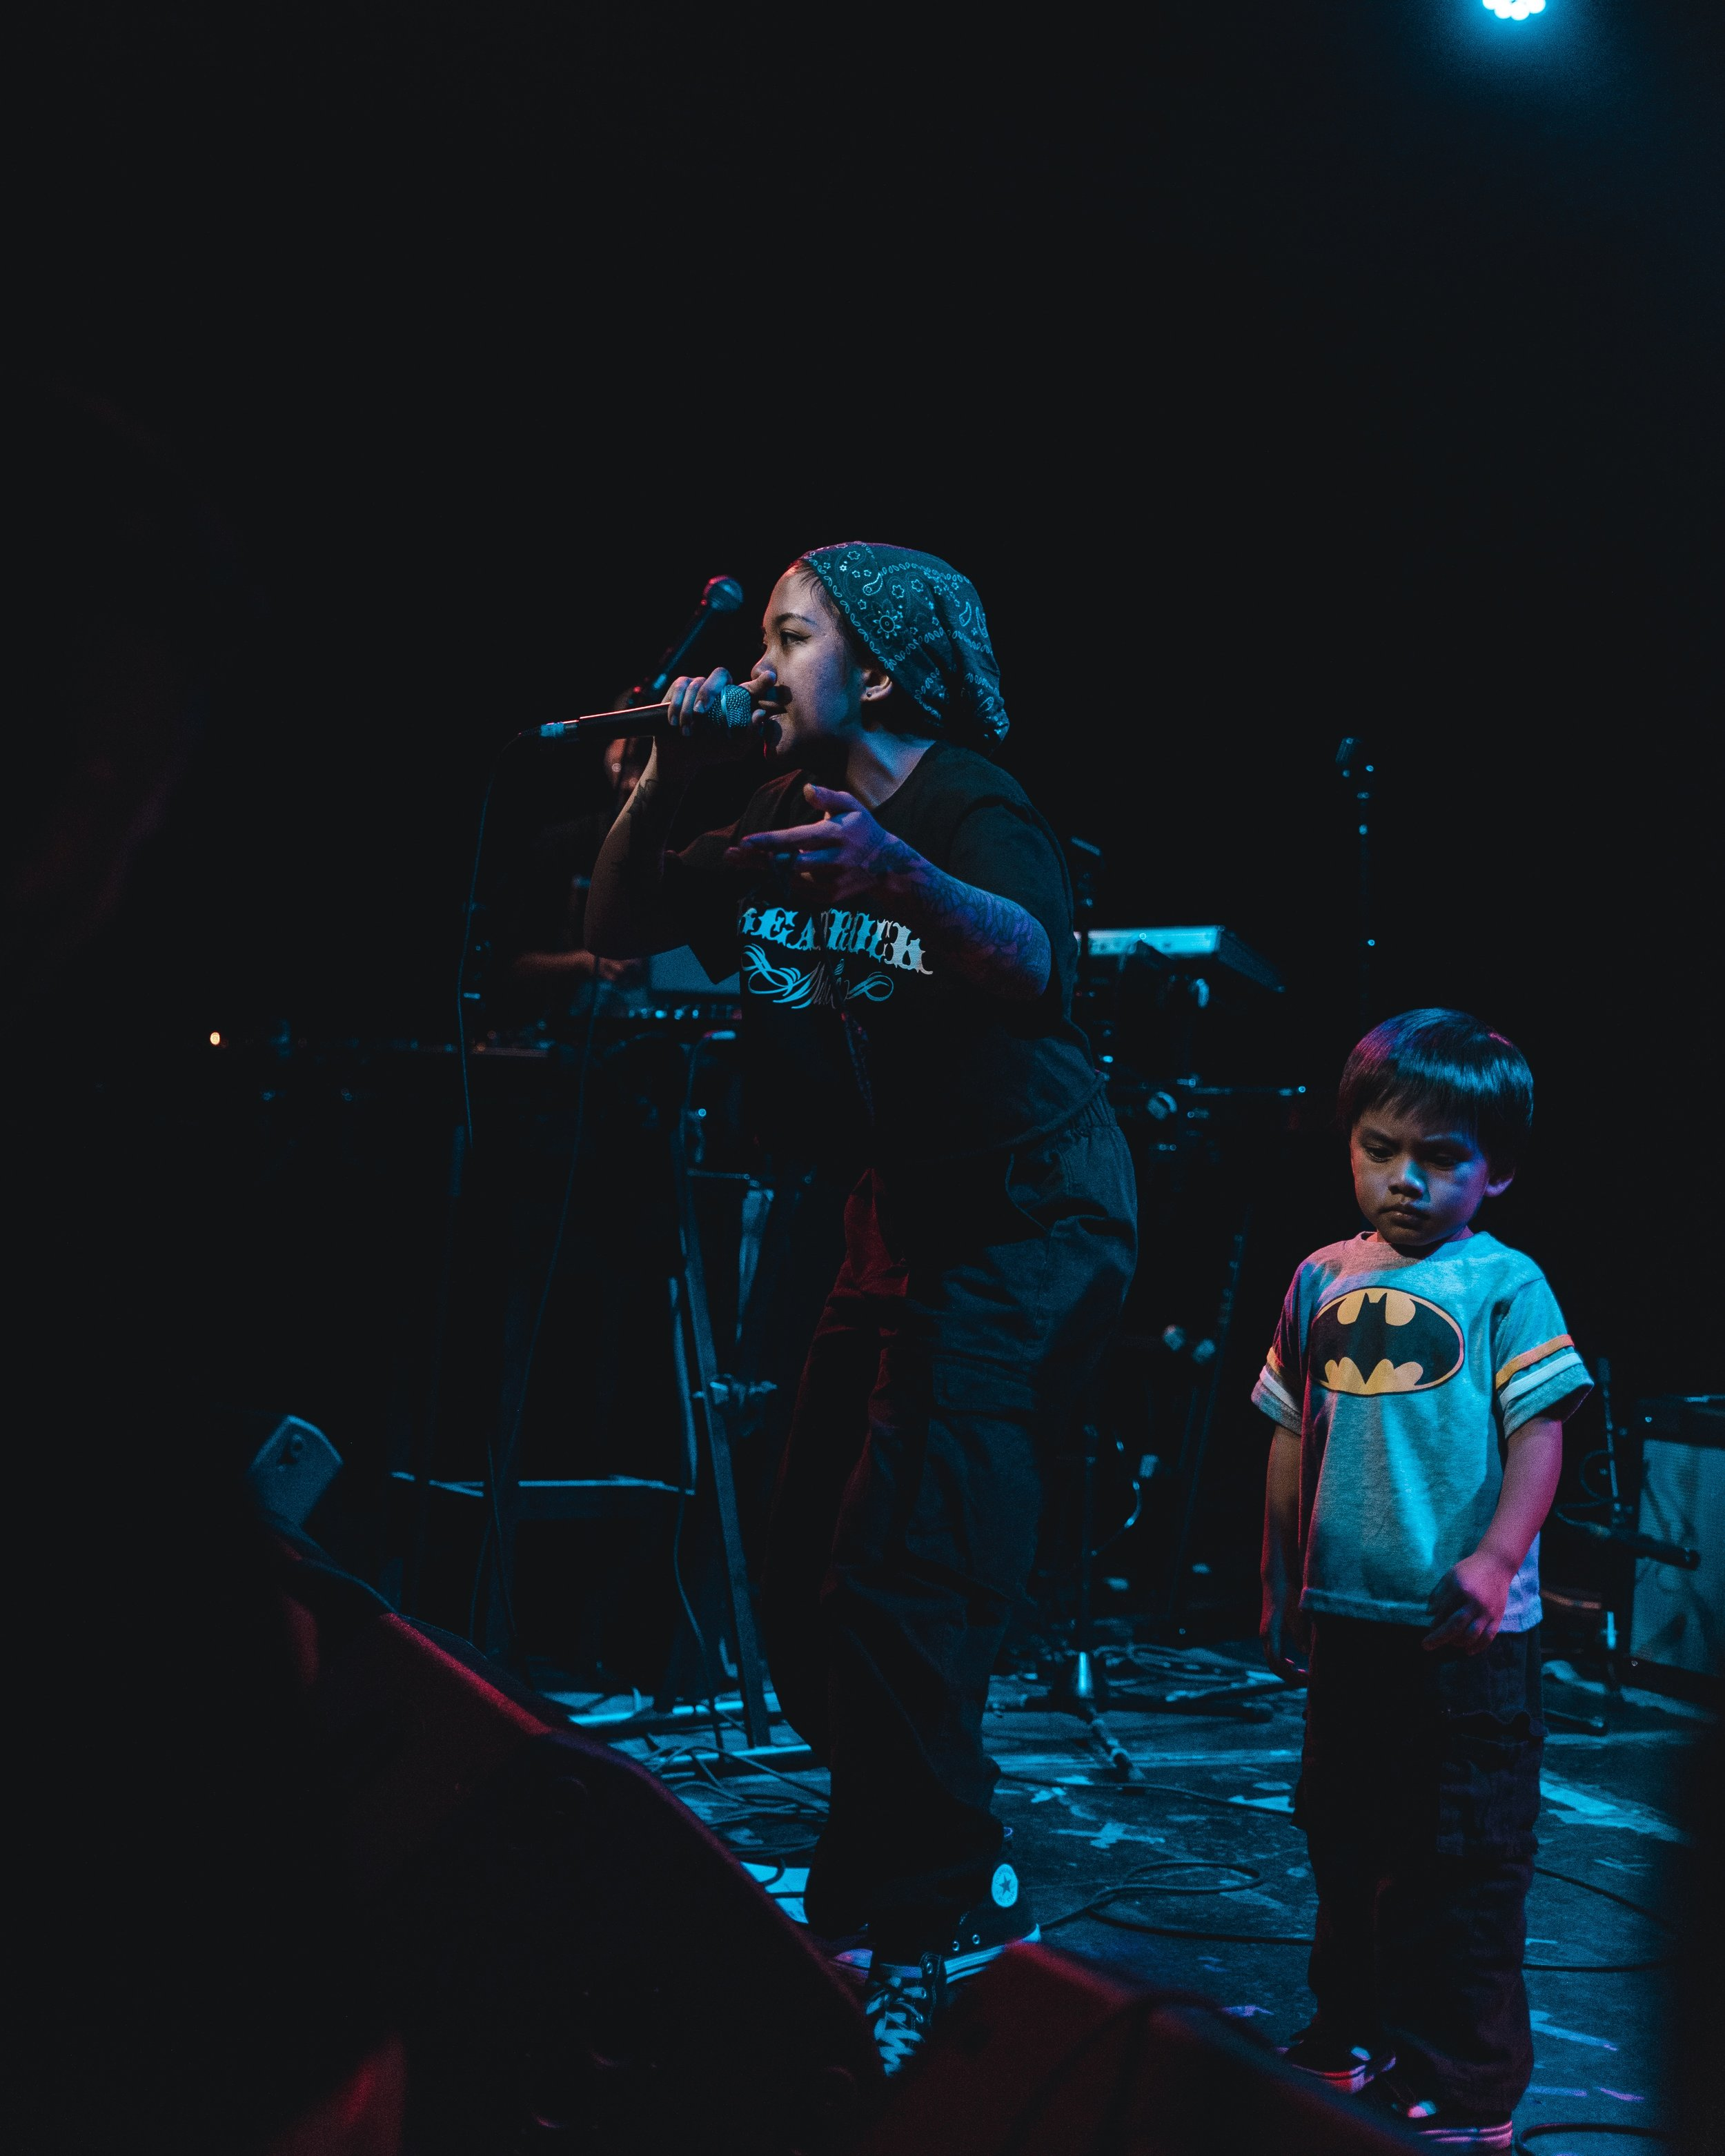 Klassy performing on stage with her son, Enok | Photo by @davidregoso